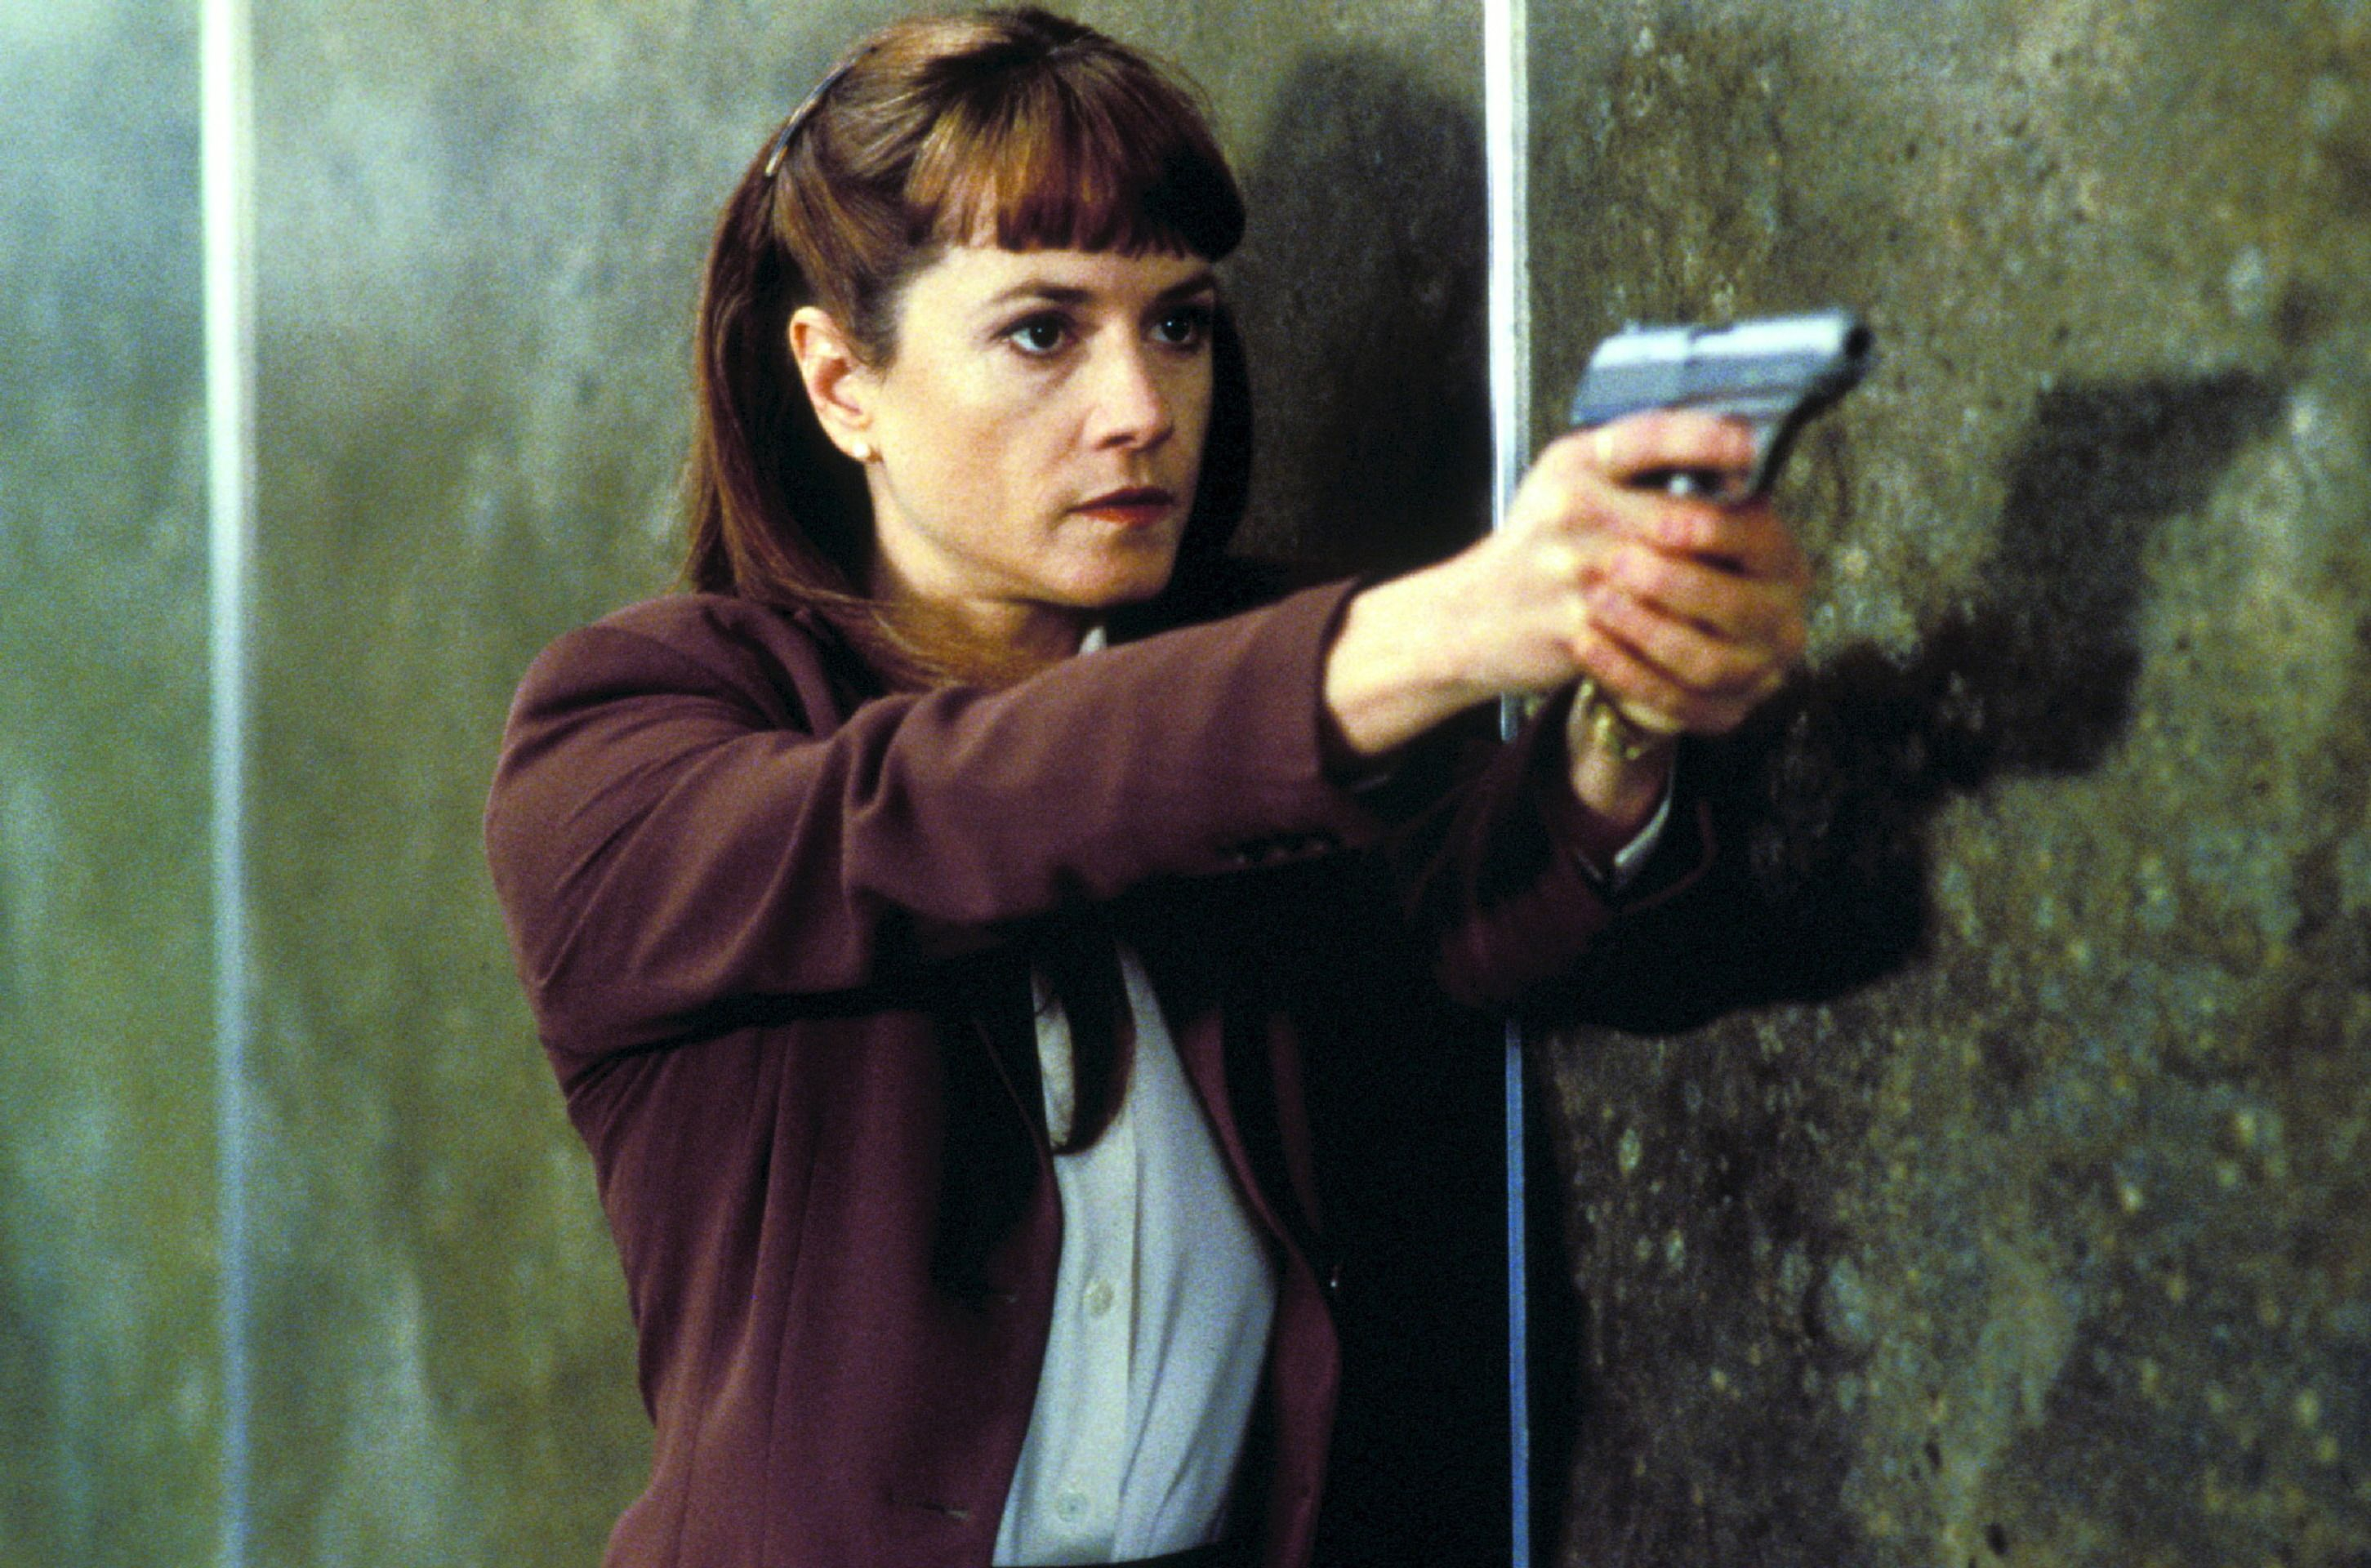 Detective Holly Hunter in Copycat (1995)